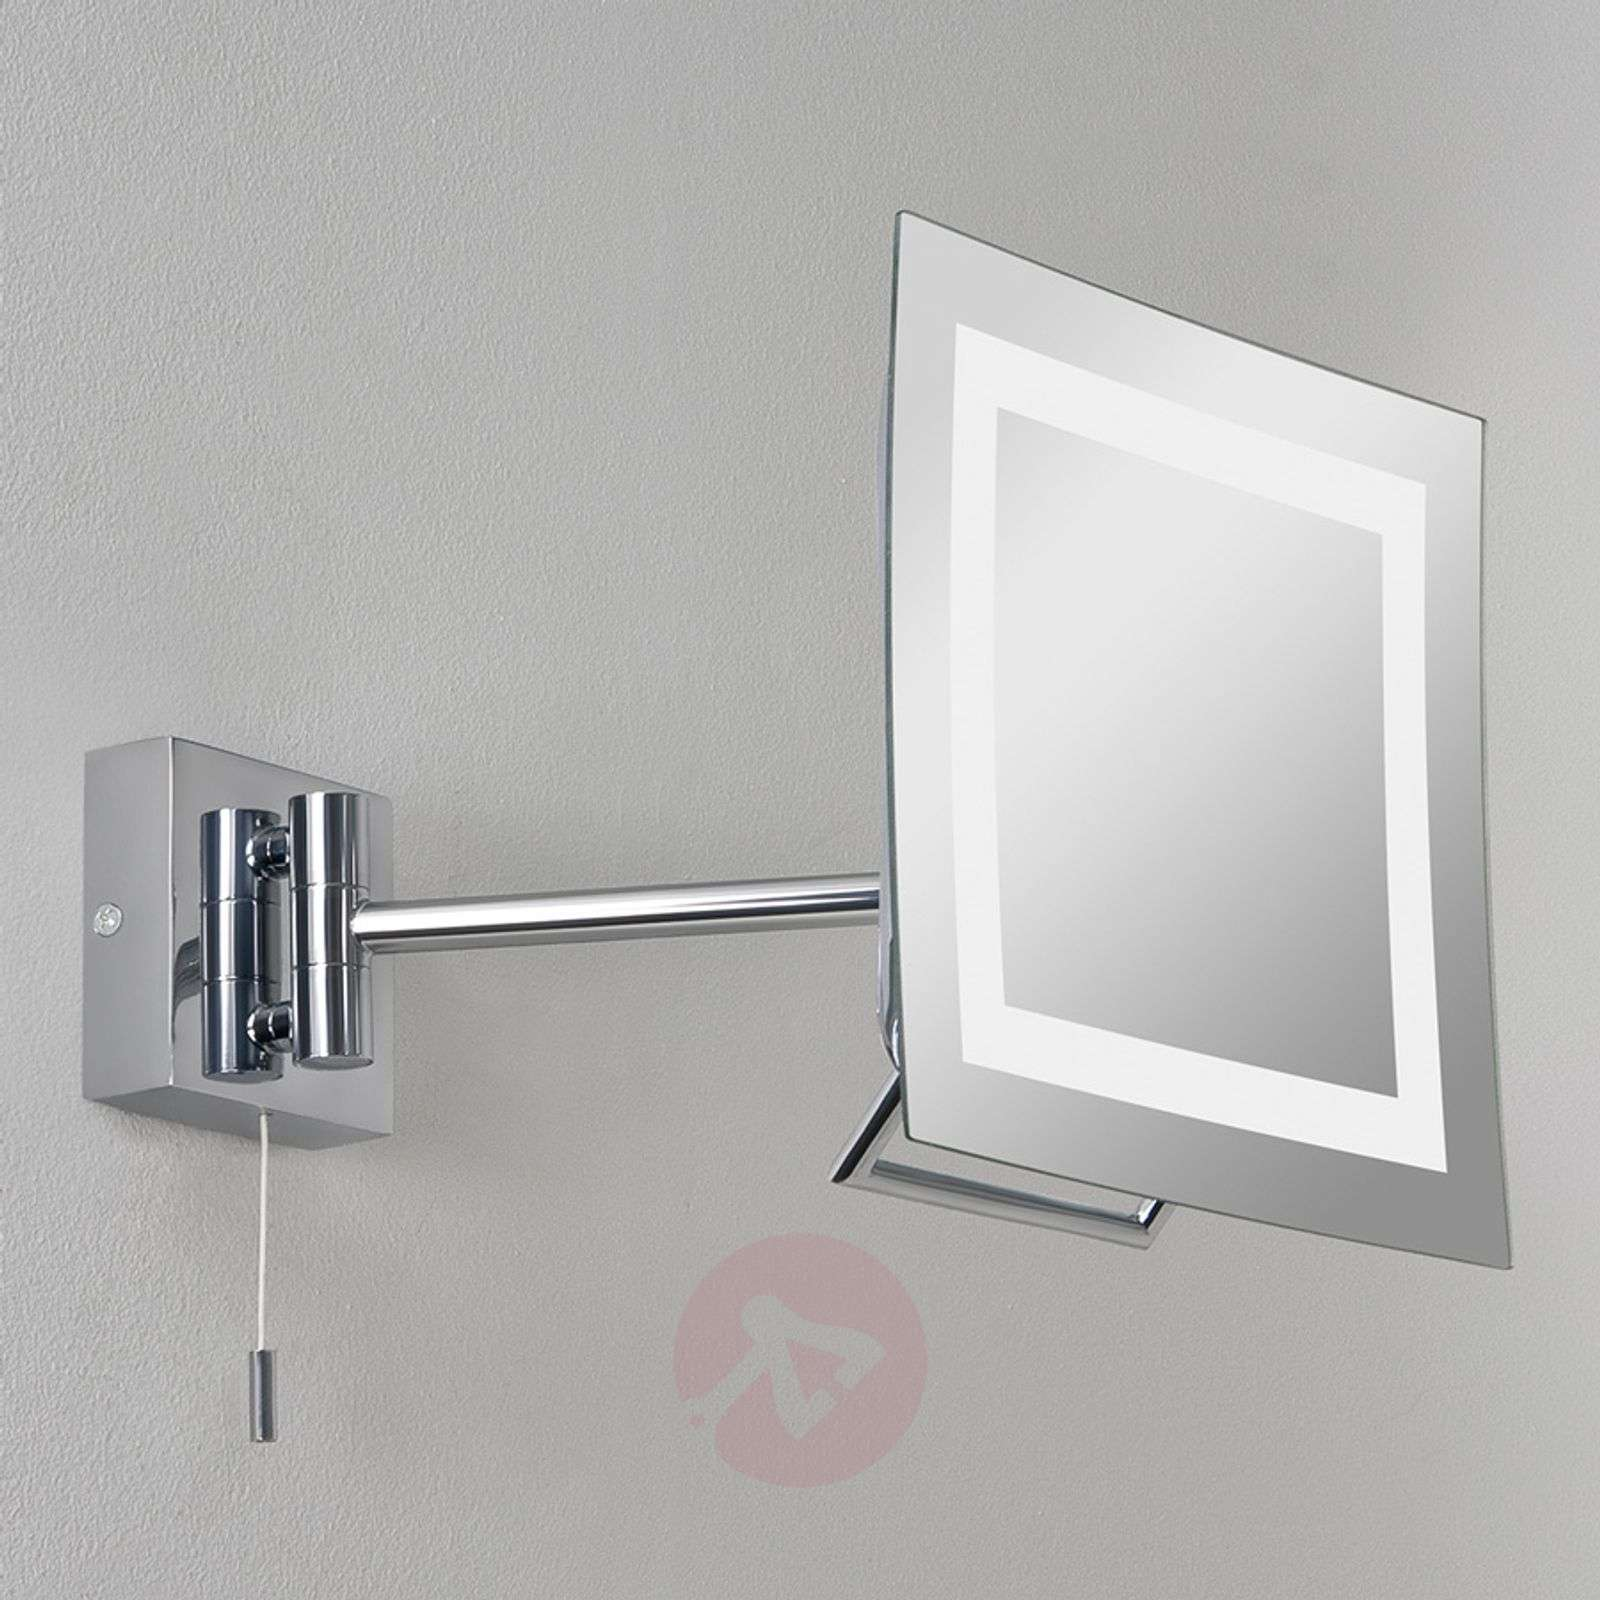 Niro Cosmetic Mirror with Lighting-1020071-02